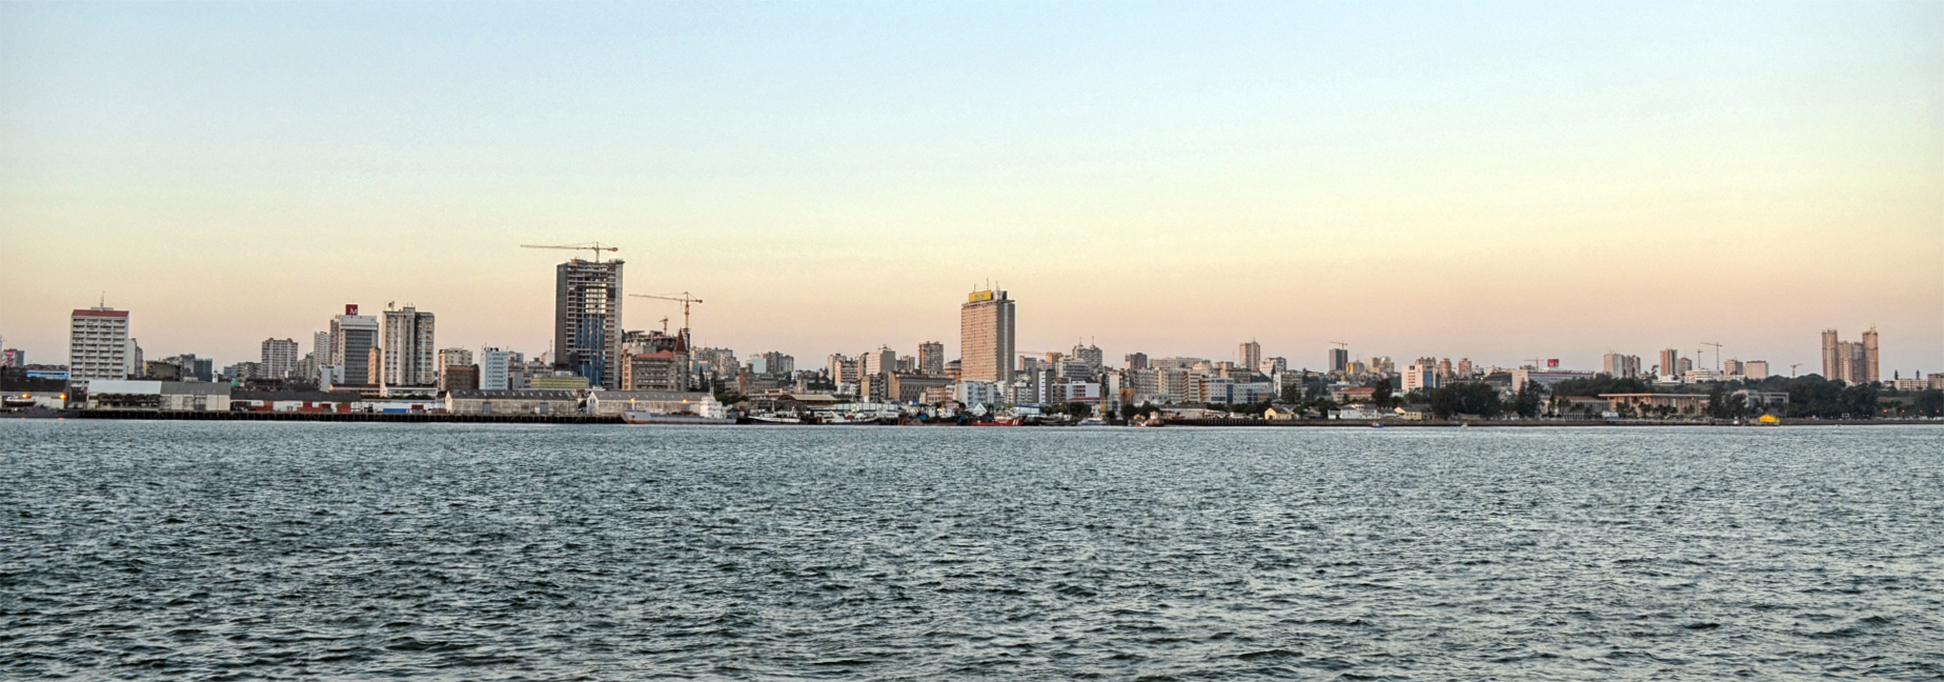 Google Map of Maputo, Mozambique - Nations Online Project